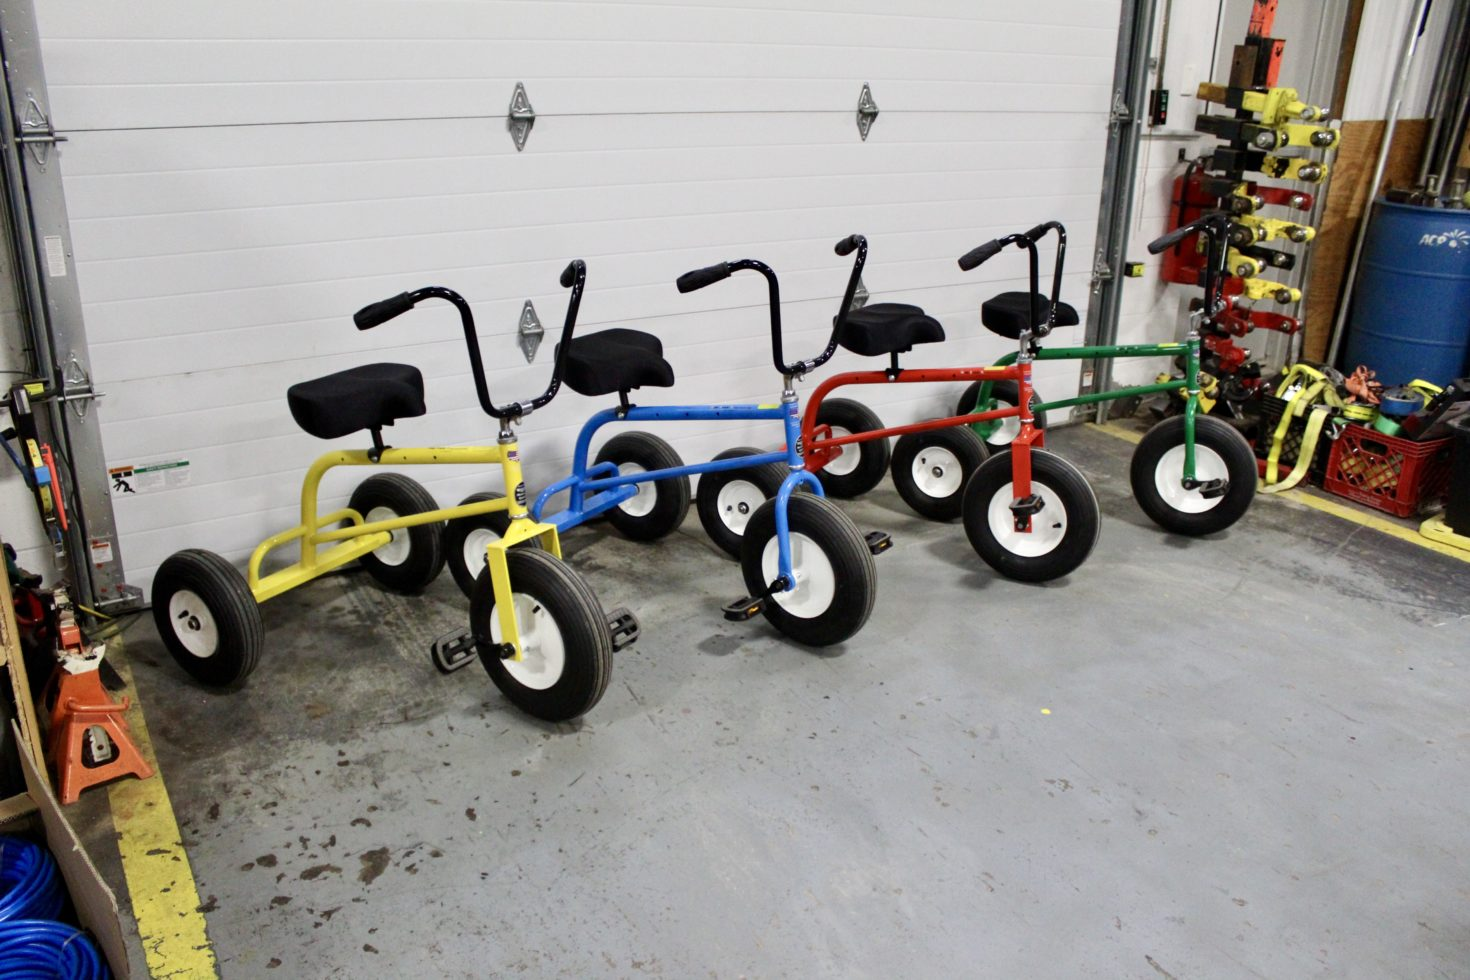 Wacky Trikes in all colors